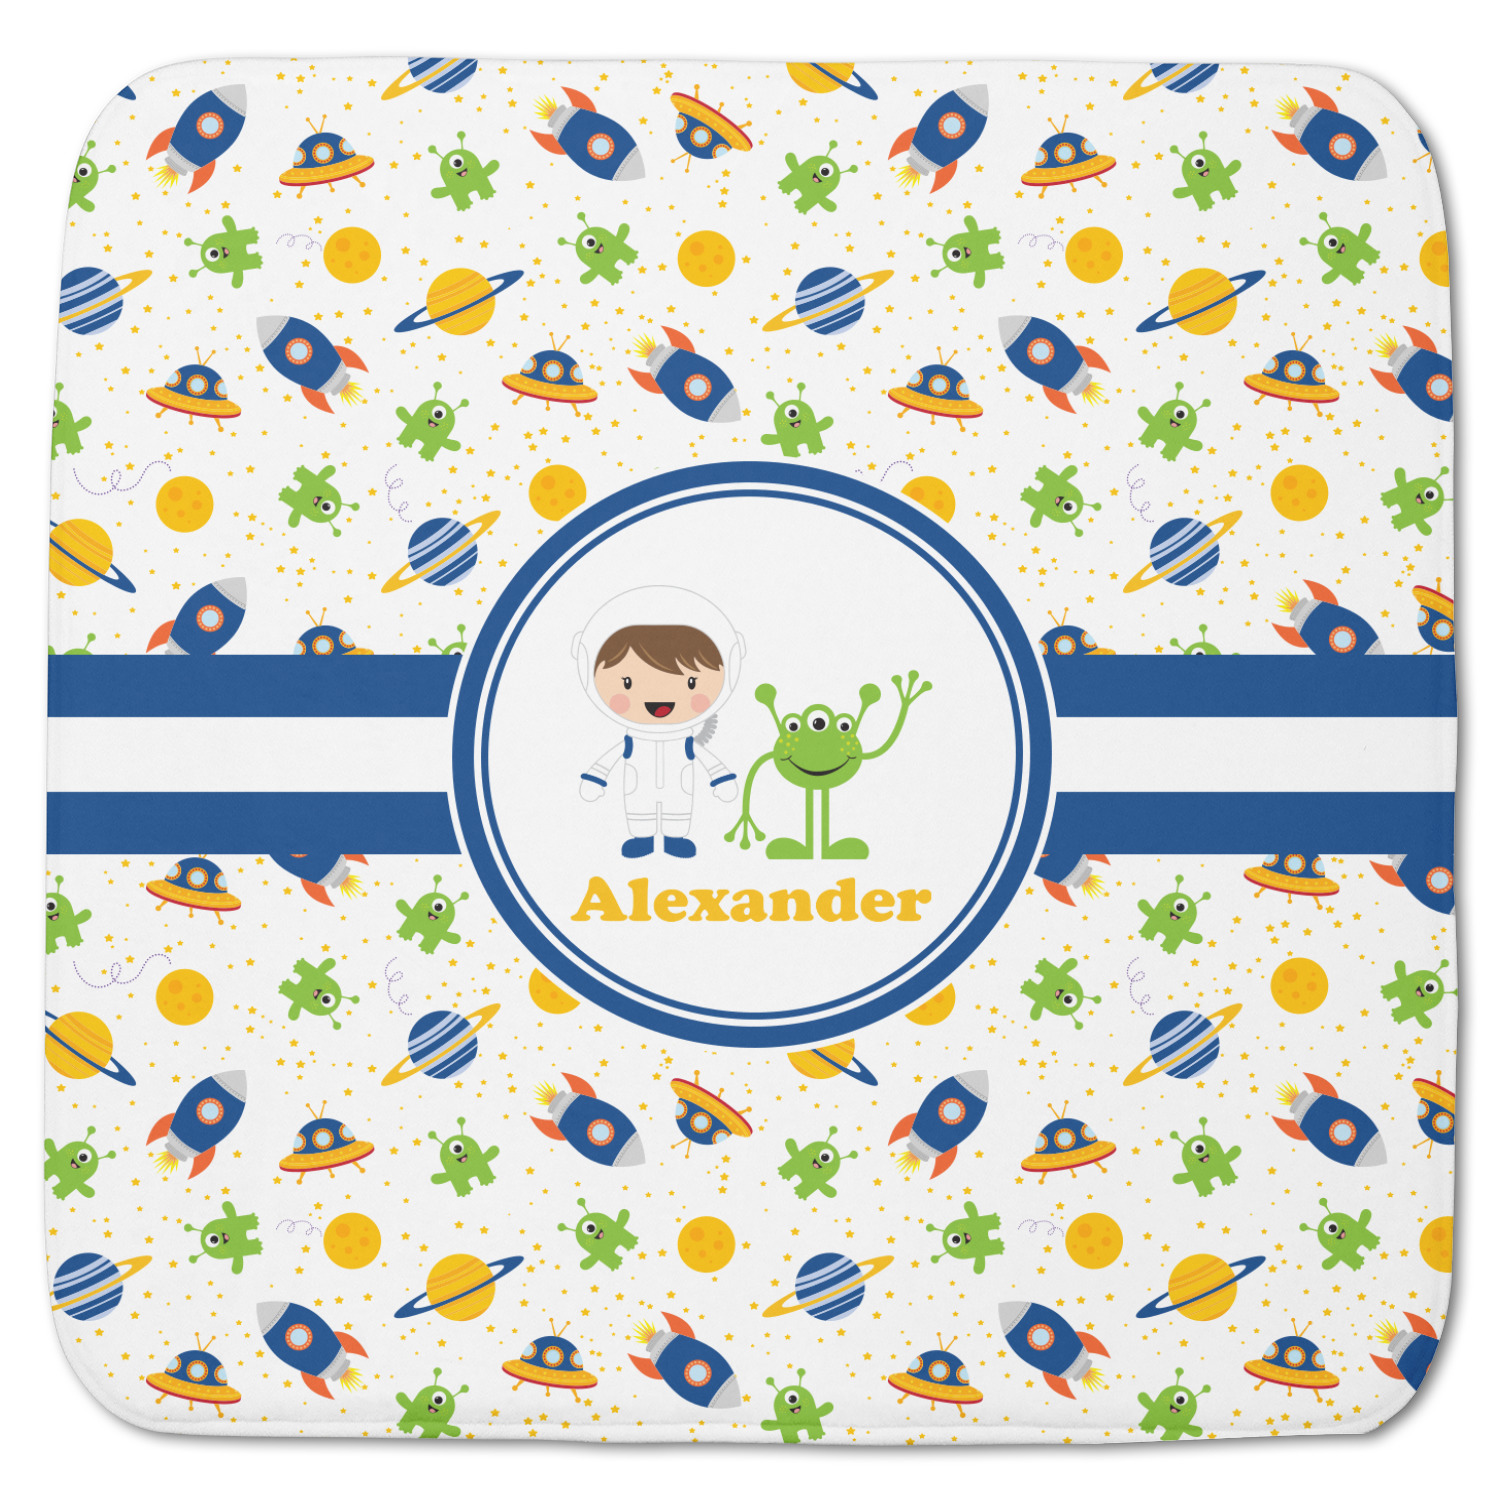 Boy 39 s space themed memory foam bath mat 48 x48 for Space themed bathroom